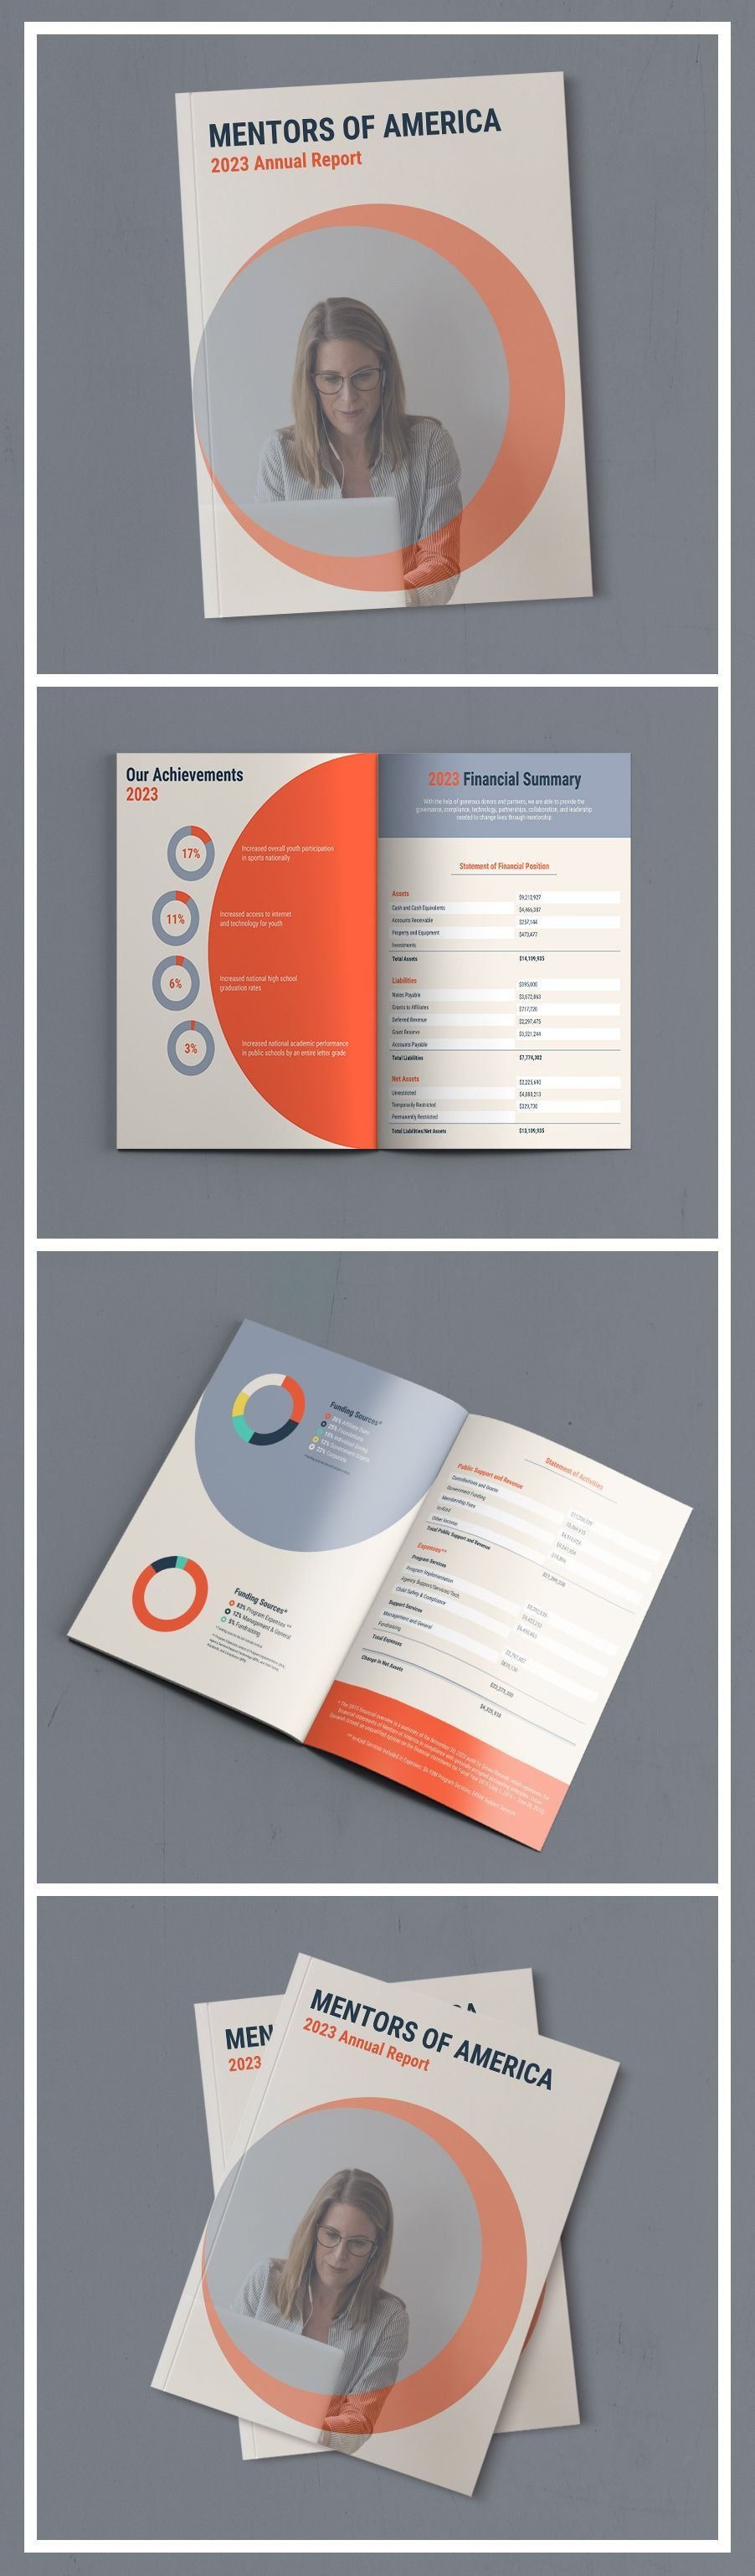 Nonprofit Annual Report Template Template #annualreports Nonprofit Annual Report Template - Measure How Well Your Organization Is Doing By Customizing This Nonprofit Annual Report Template! // Modern Nonprofit Annual Report Template4 #annualreports Nonprofit Annual Report Template Template #annualreports Nonprofit Annual Report Template - Measure How Well Your Organization Is Doing By Customizing This Nonprofit Annual Report Template! // Modern Nonprofit Annual Report Template4 #annualreports